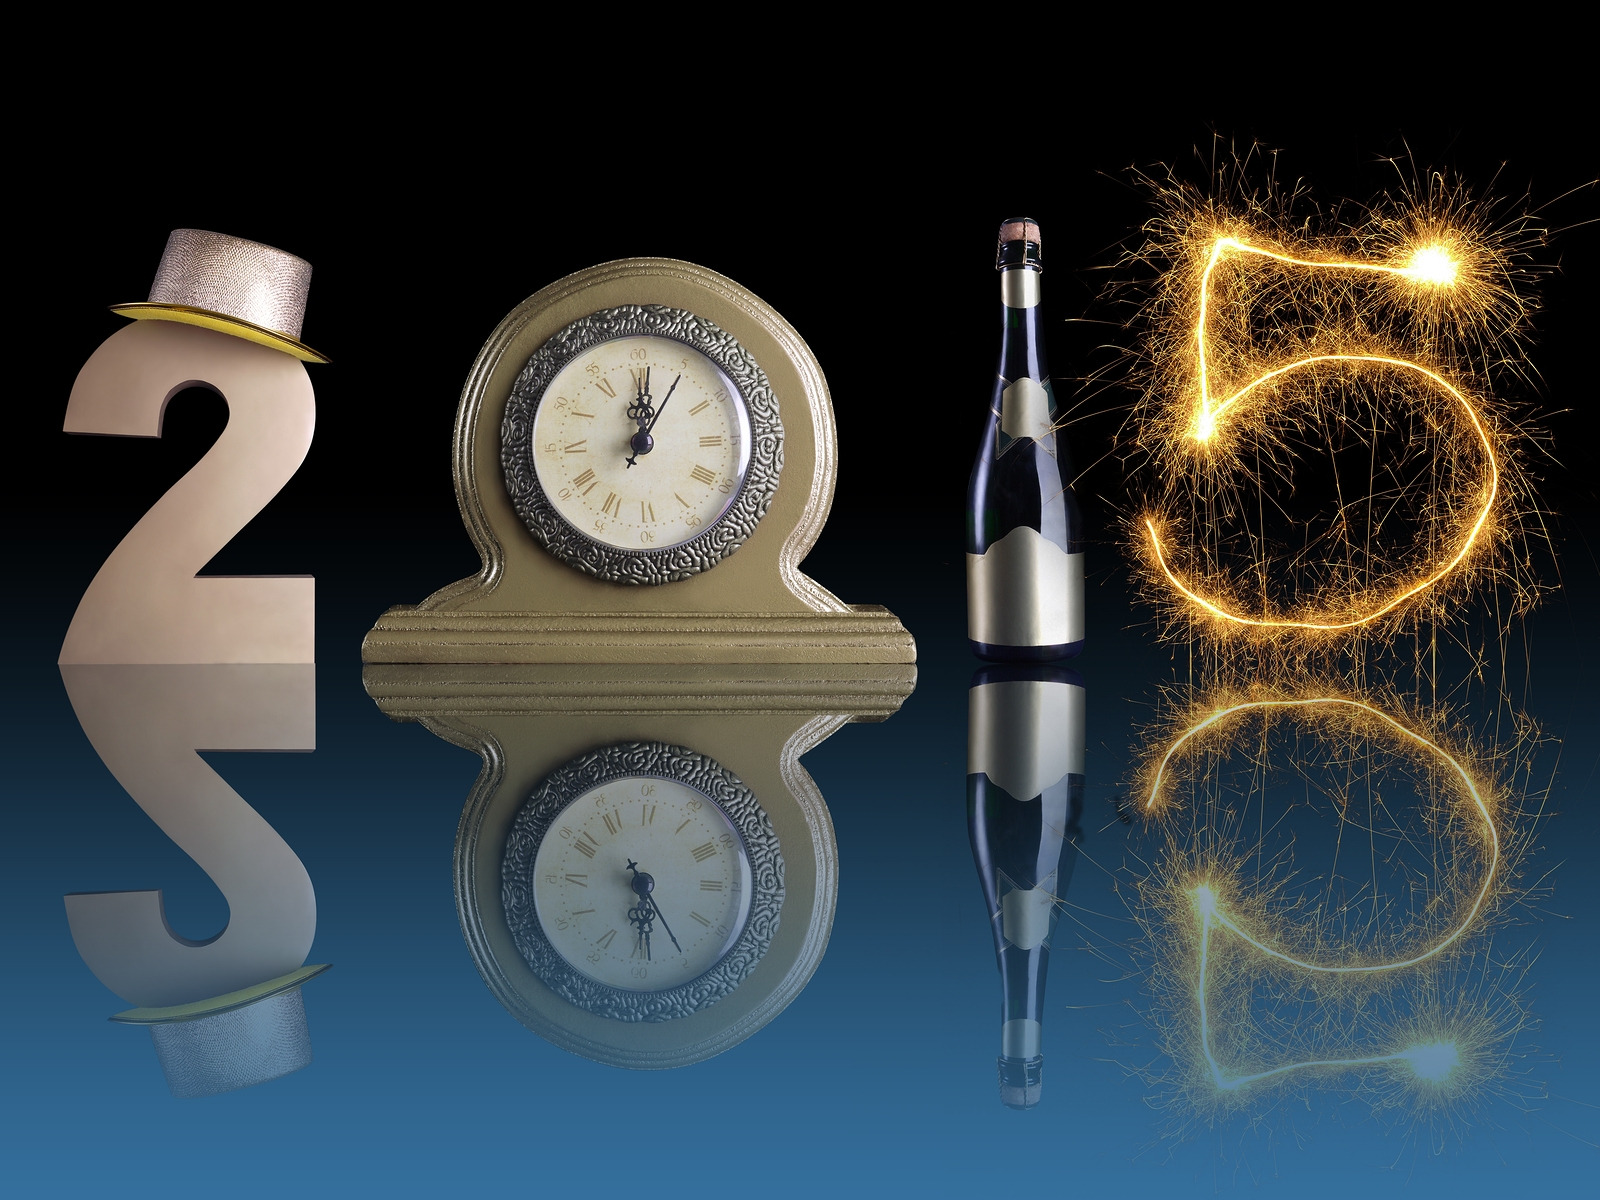 cool-new-year-cool-new-year-HD-Download-Download-cool-new-year-Wa-wallpaper-wp3604331